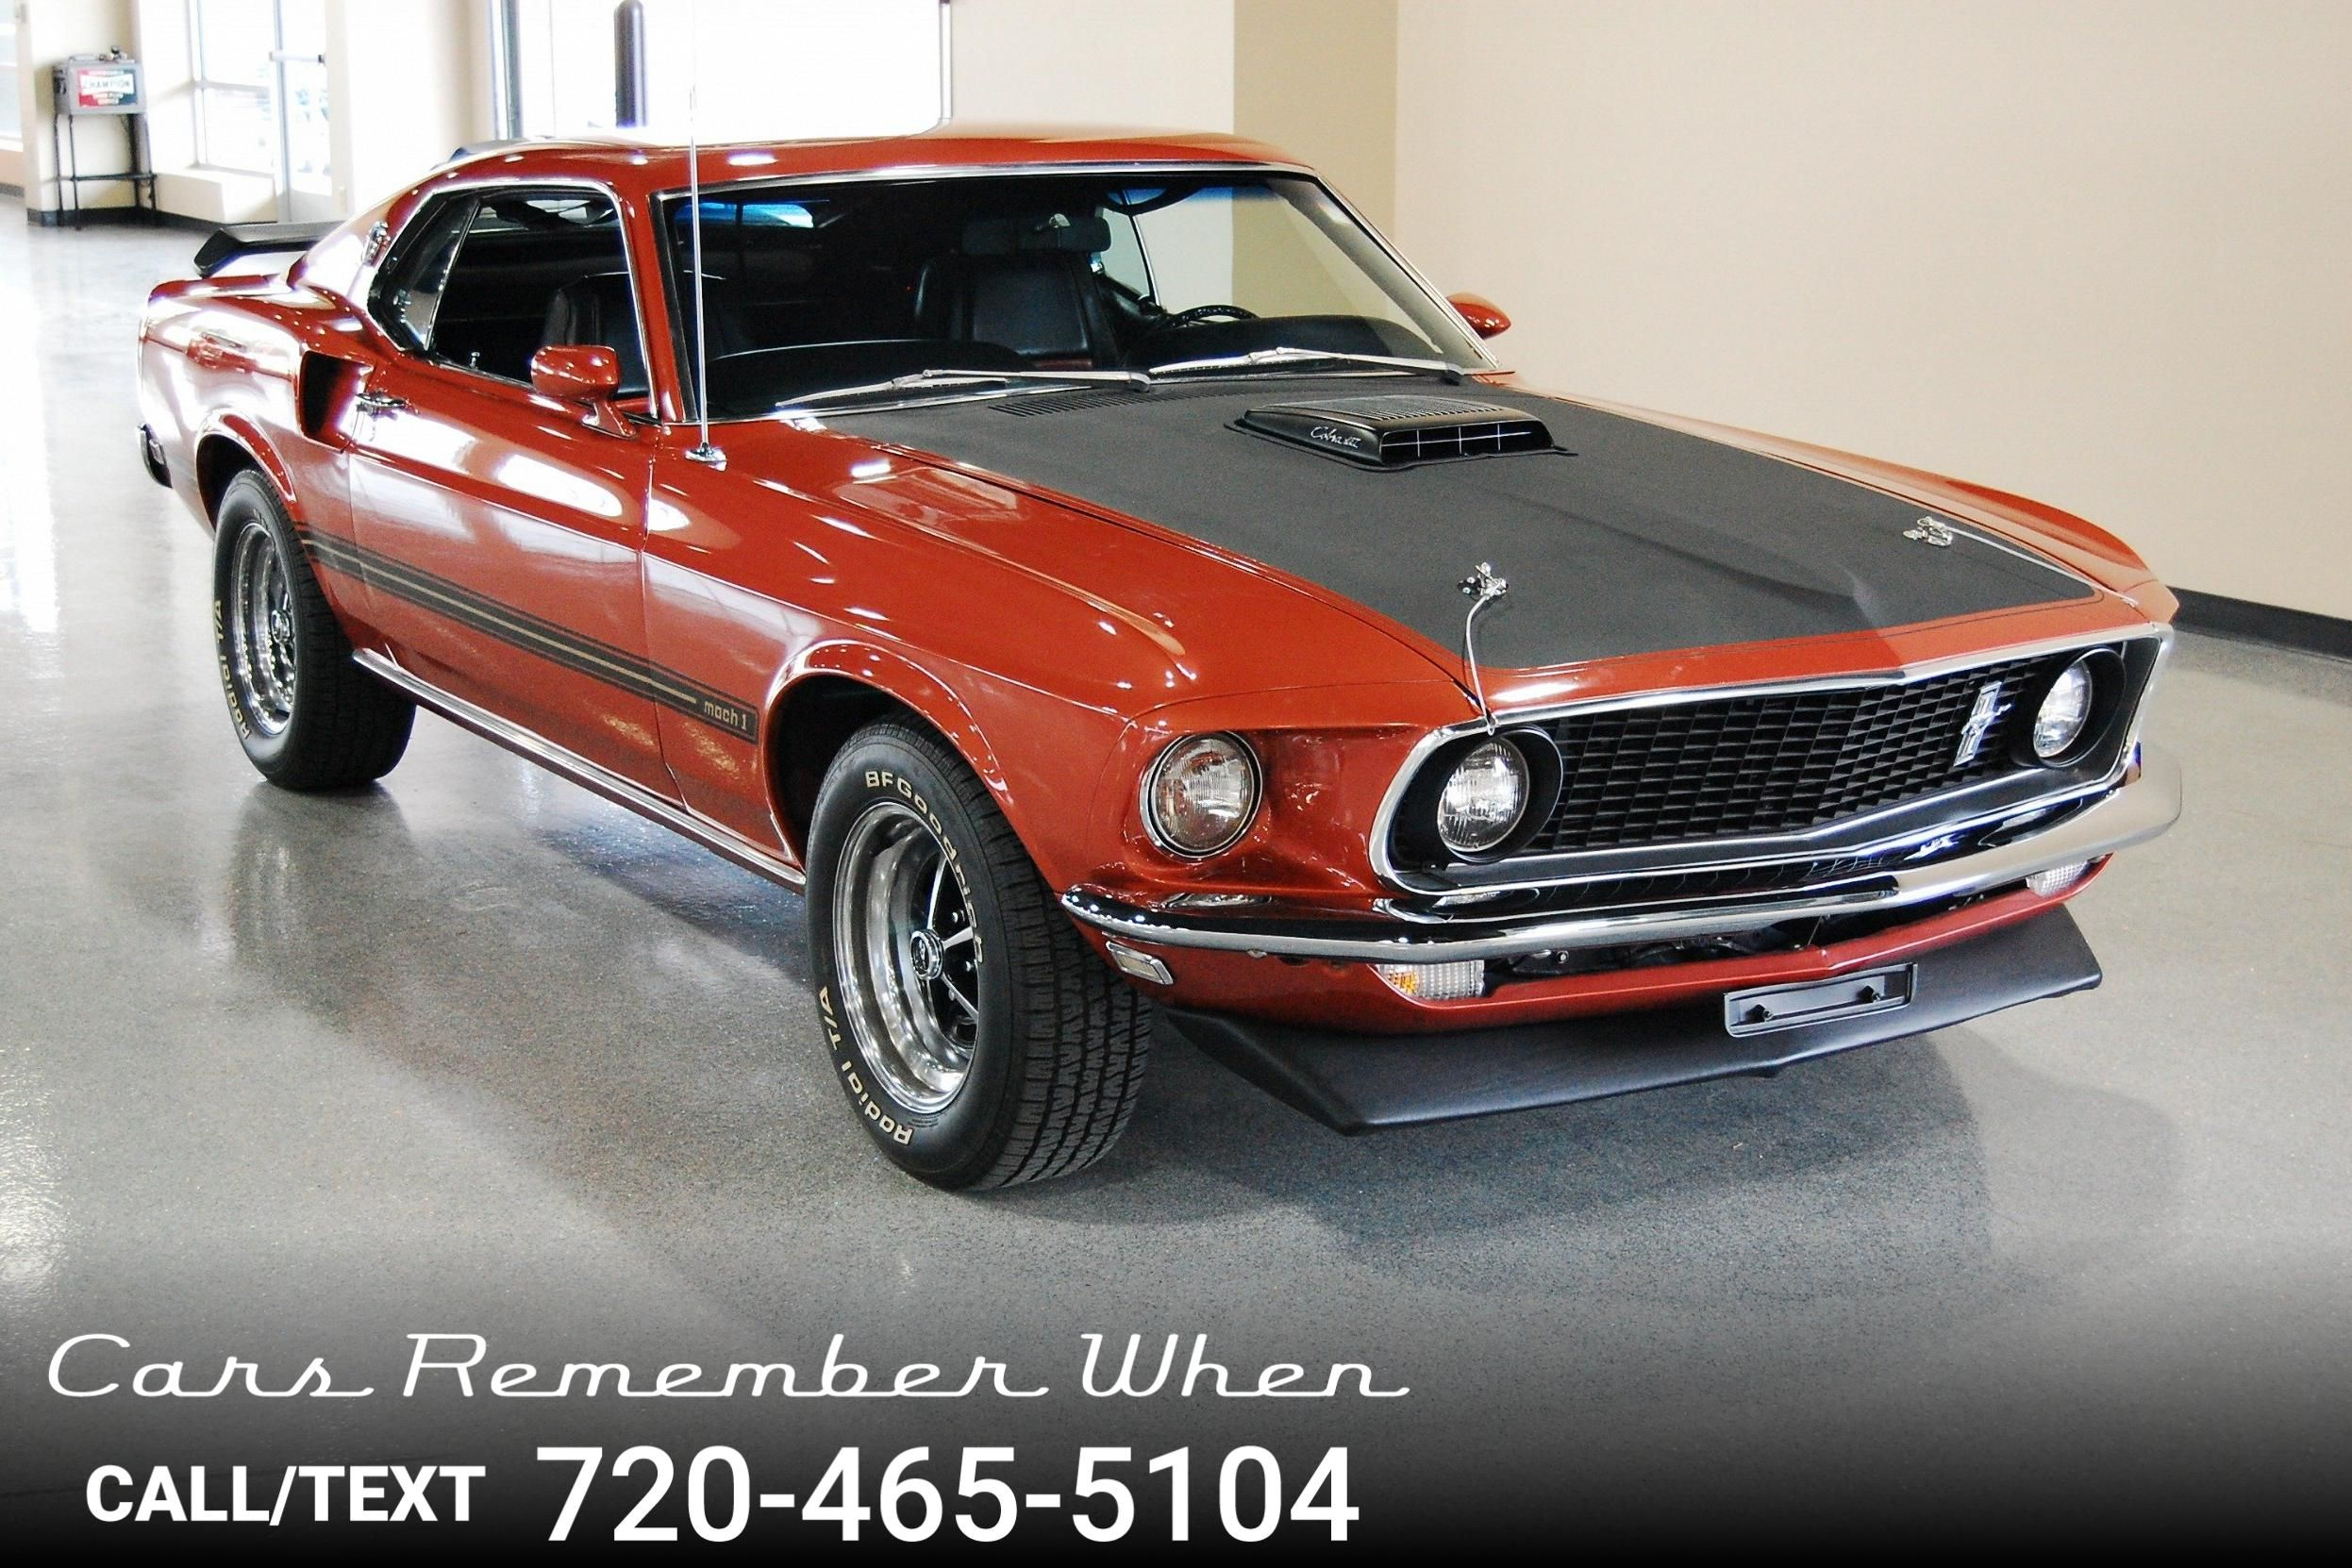 1969 Ford Mustang s